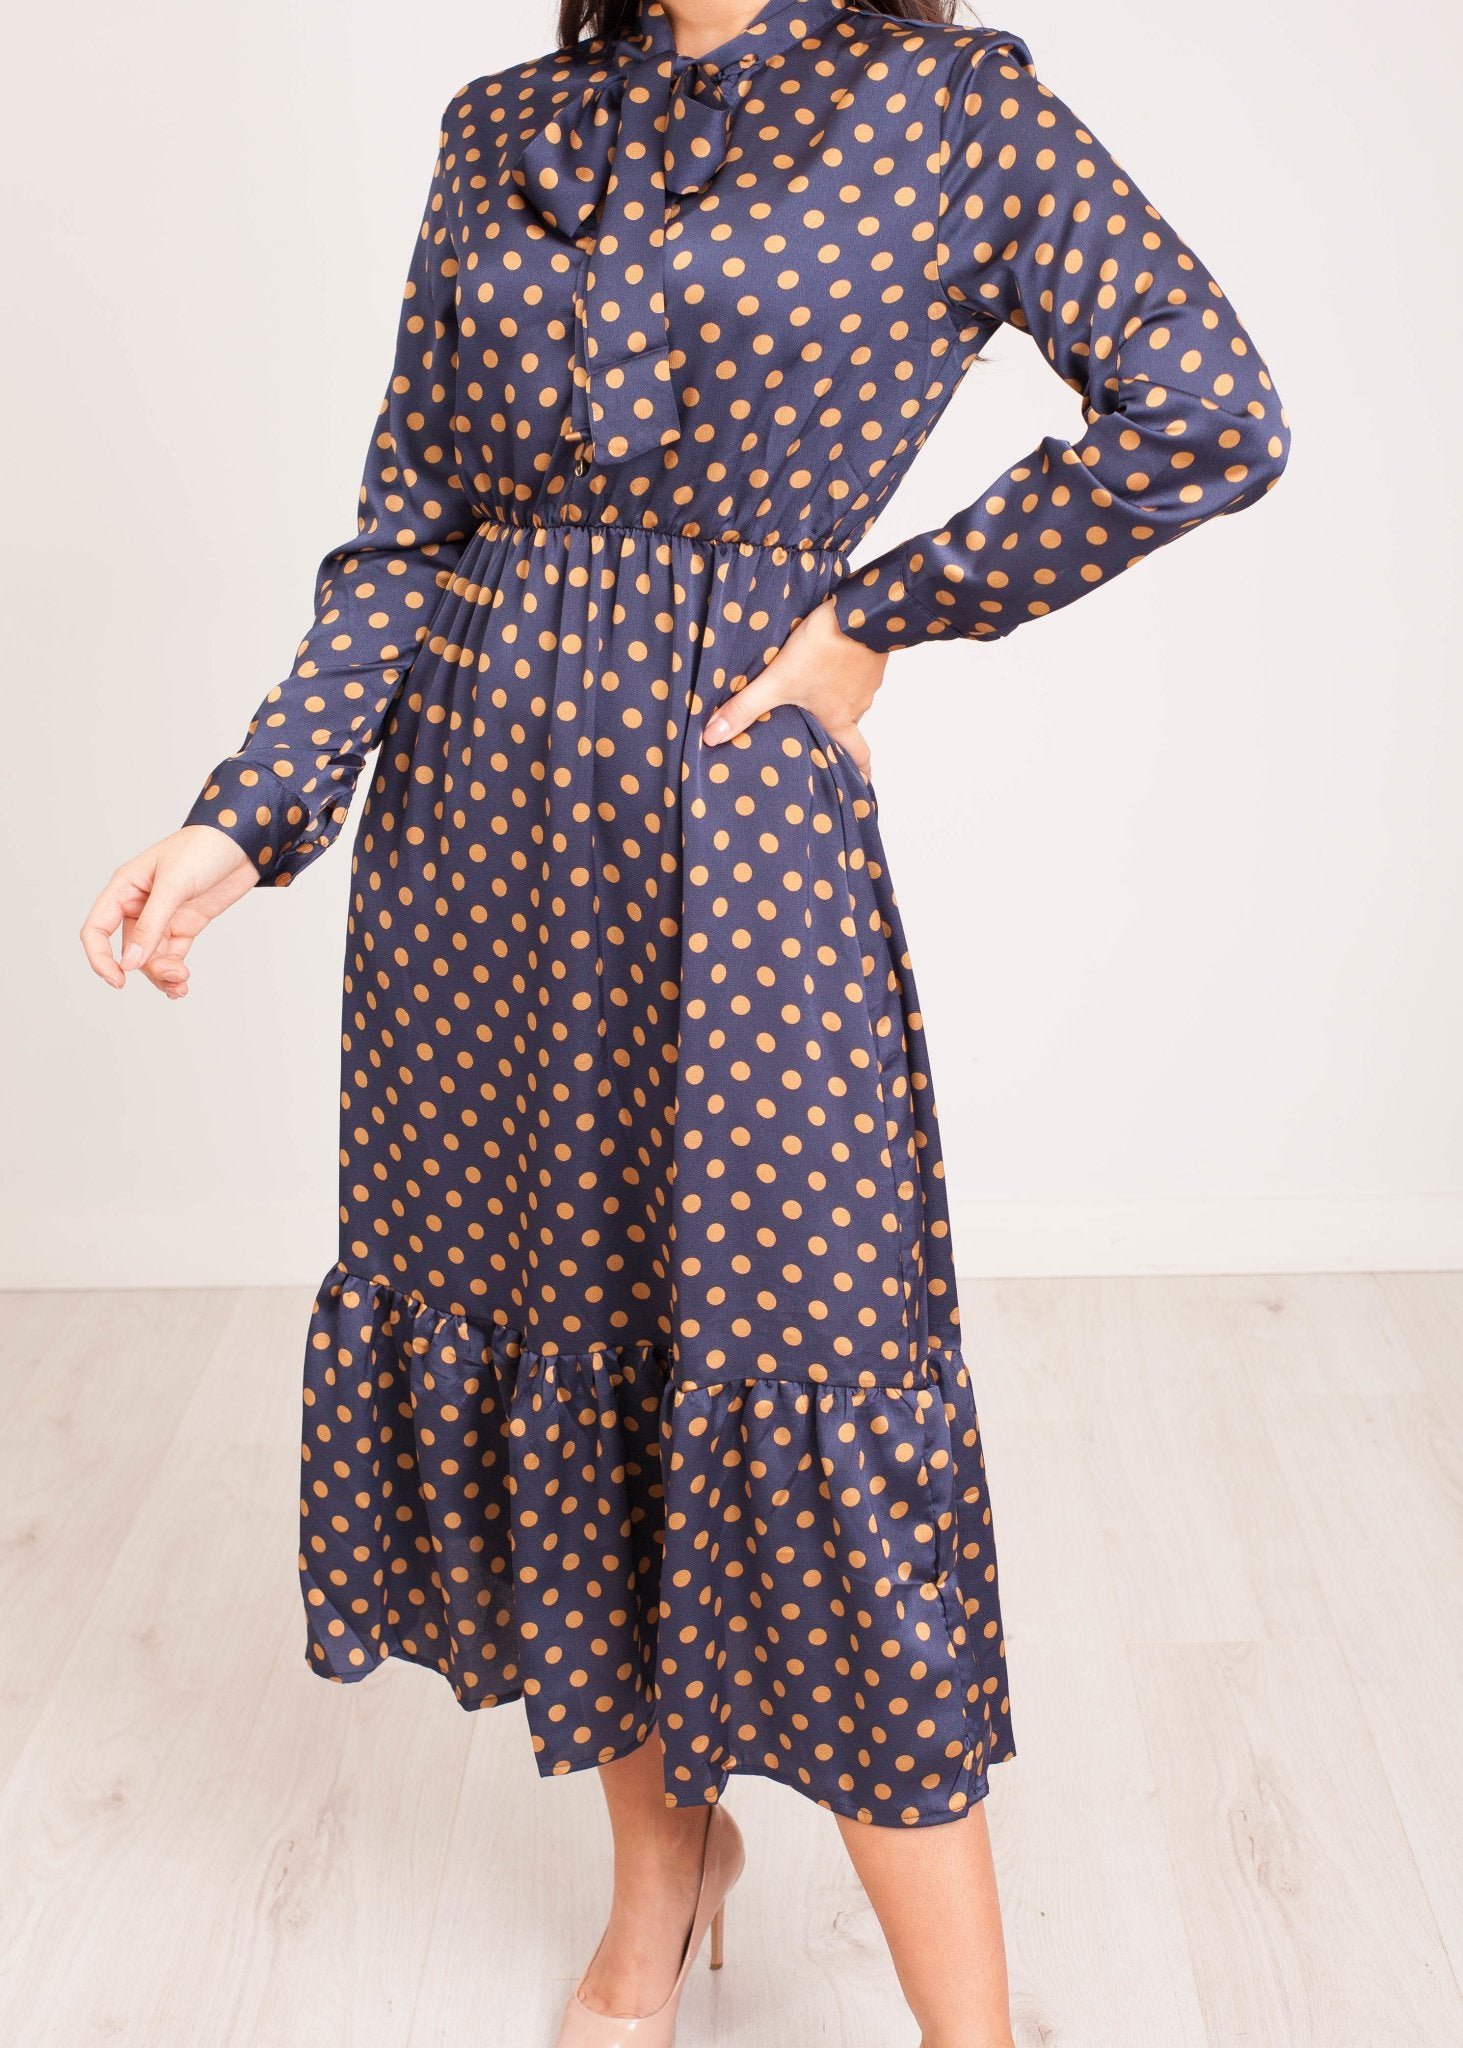 Nora Midi Dress in Navy Polka Dot - The Walk in Wardrobe